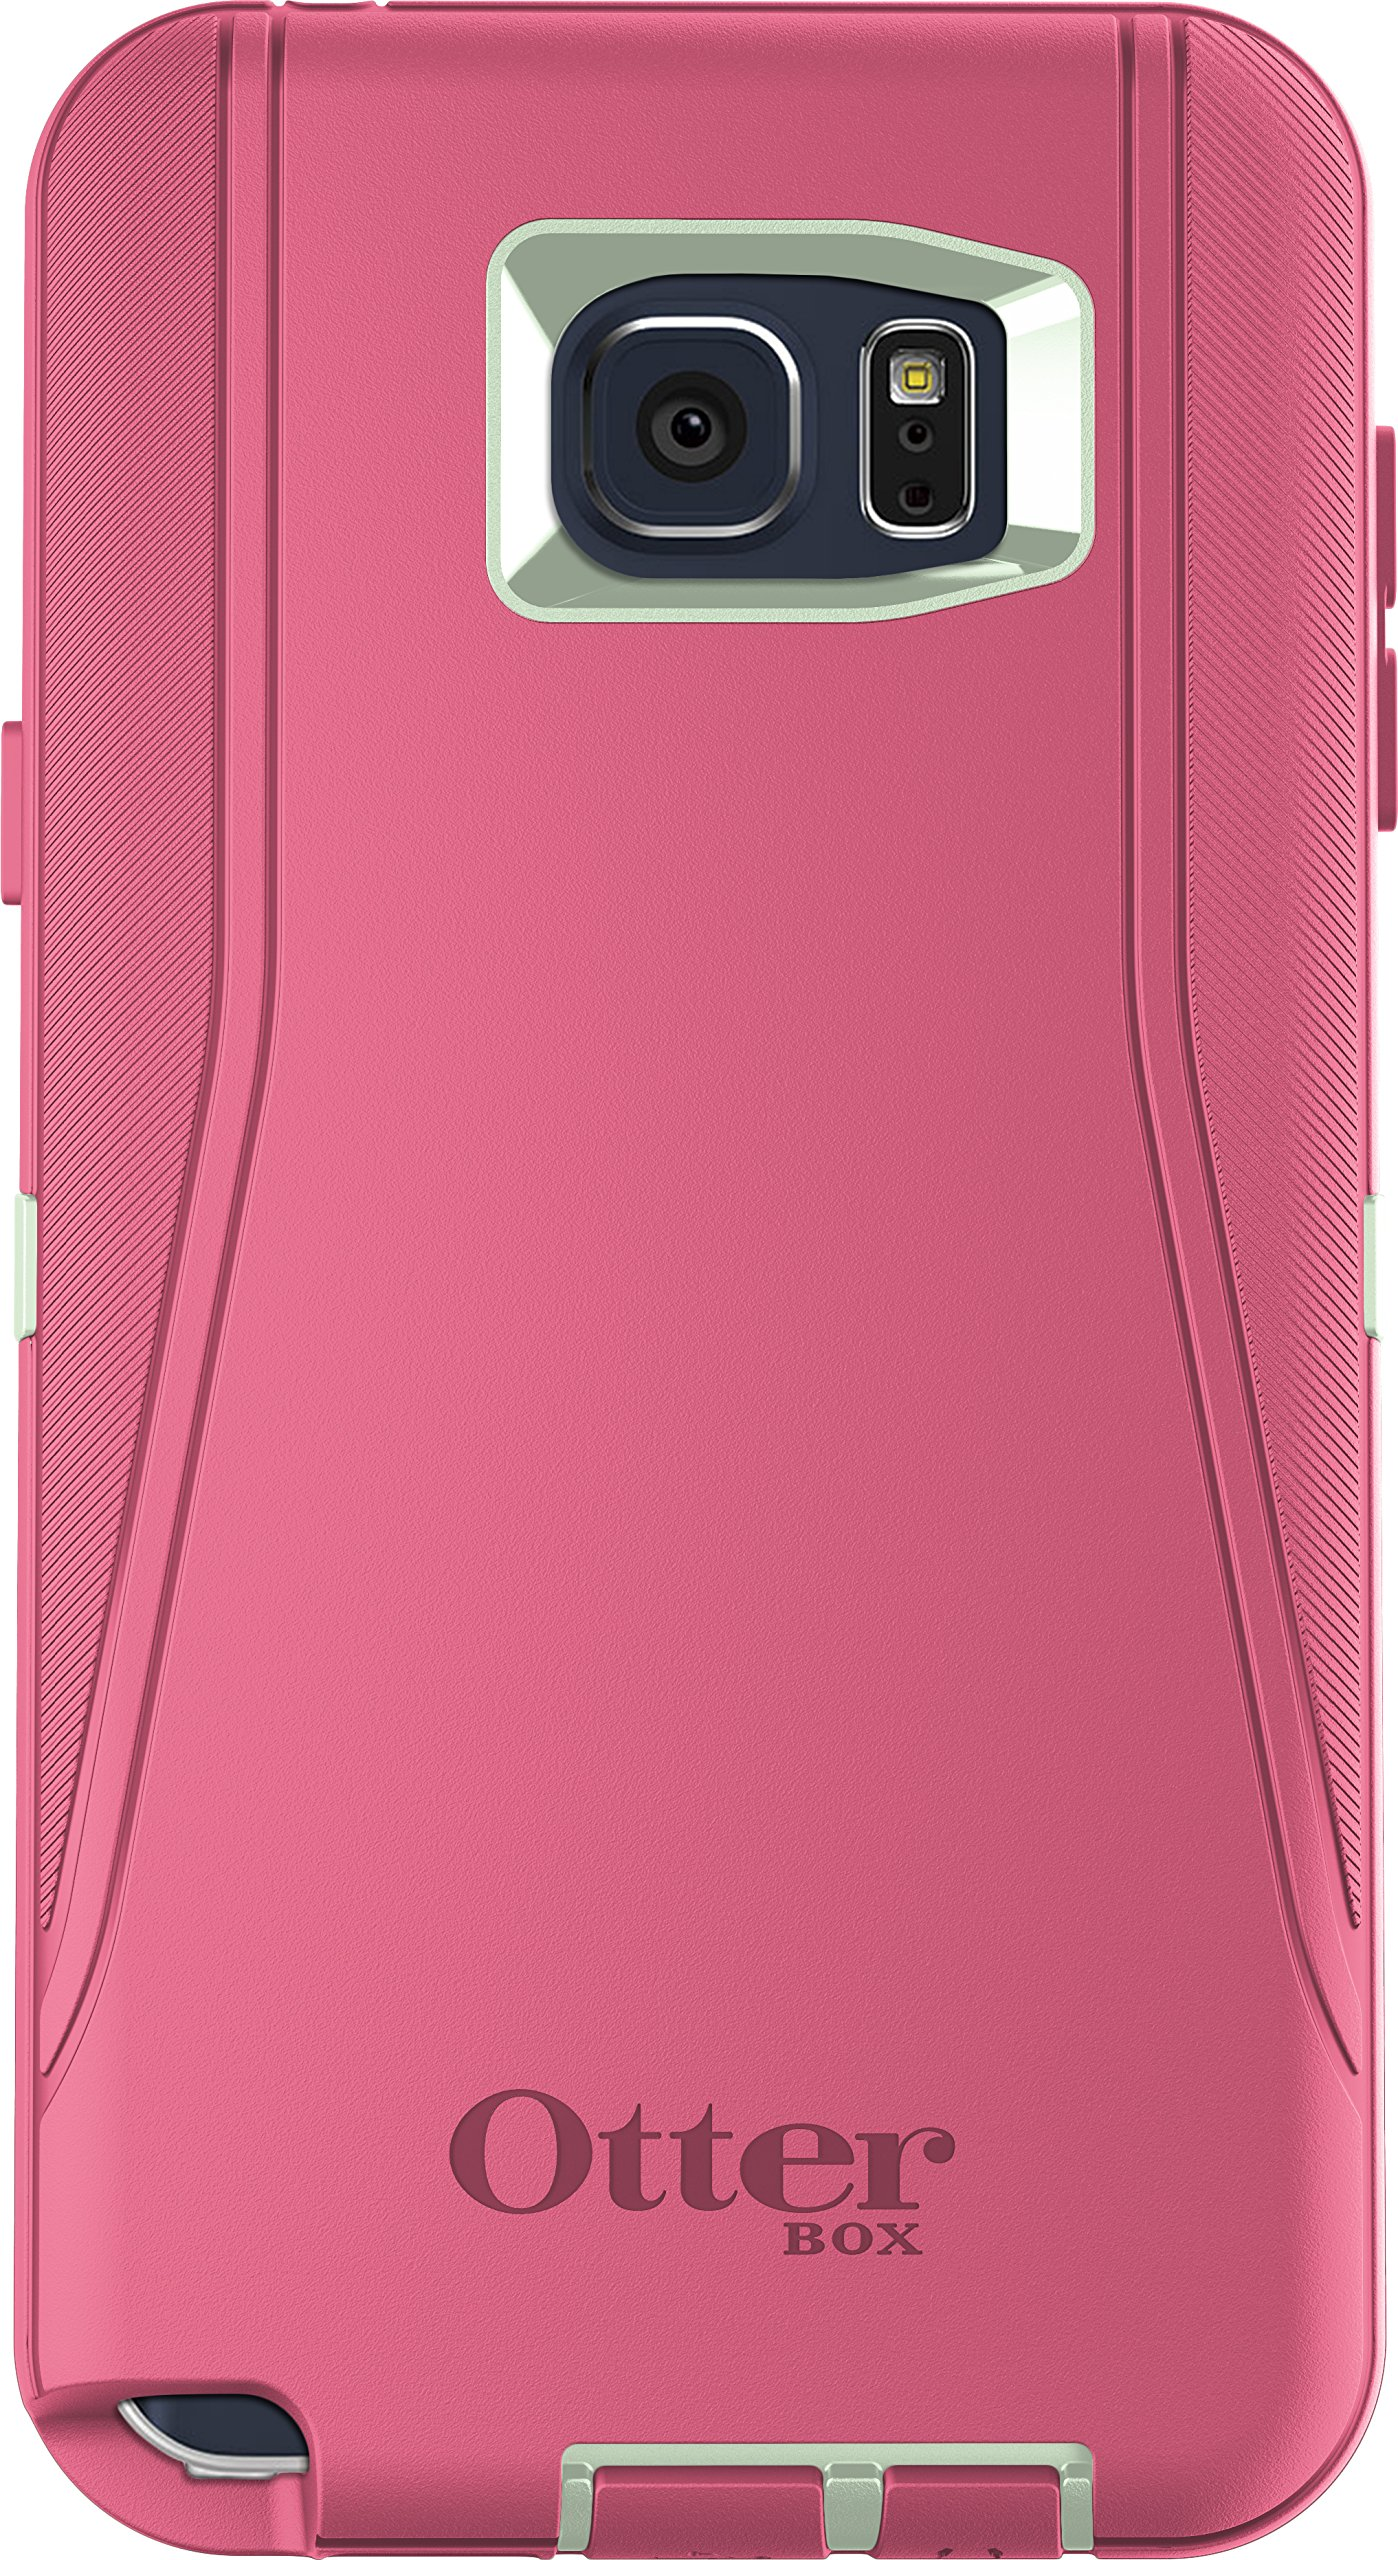 OtterBox DEFENDER Cell Phone Case for Samsung Galaxy Note5 - Retail Packaging - MELON POP (SAGE GREEN/HIBISCUS PINK)